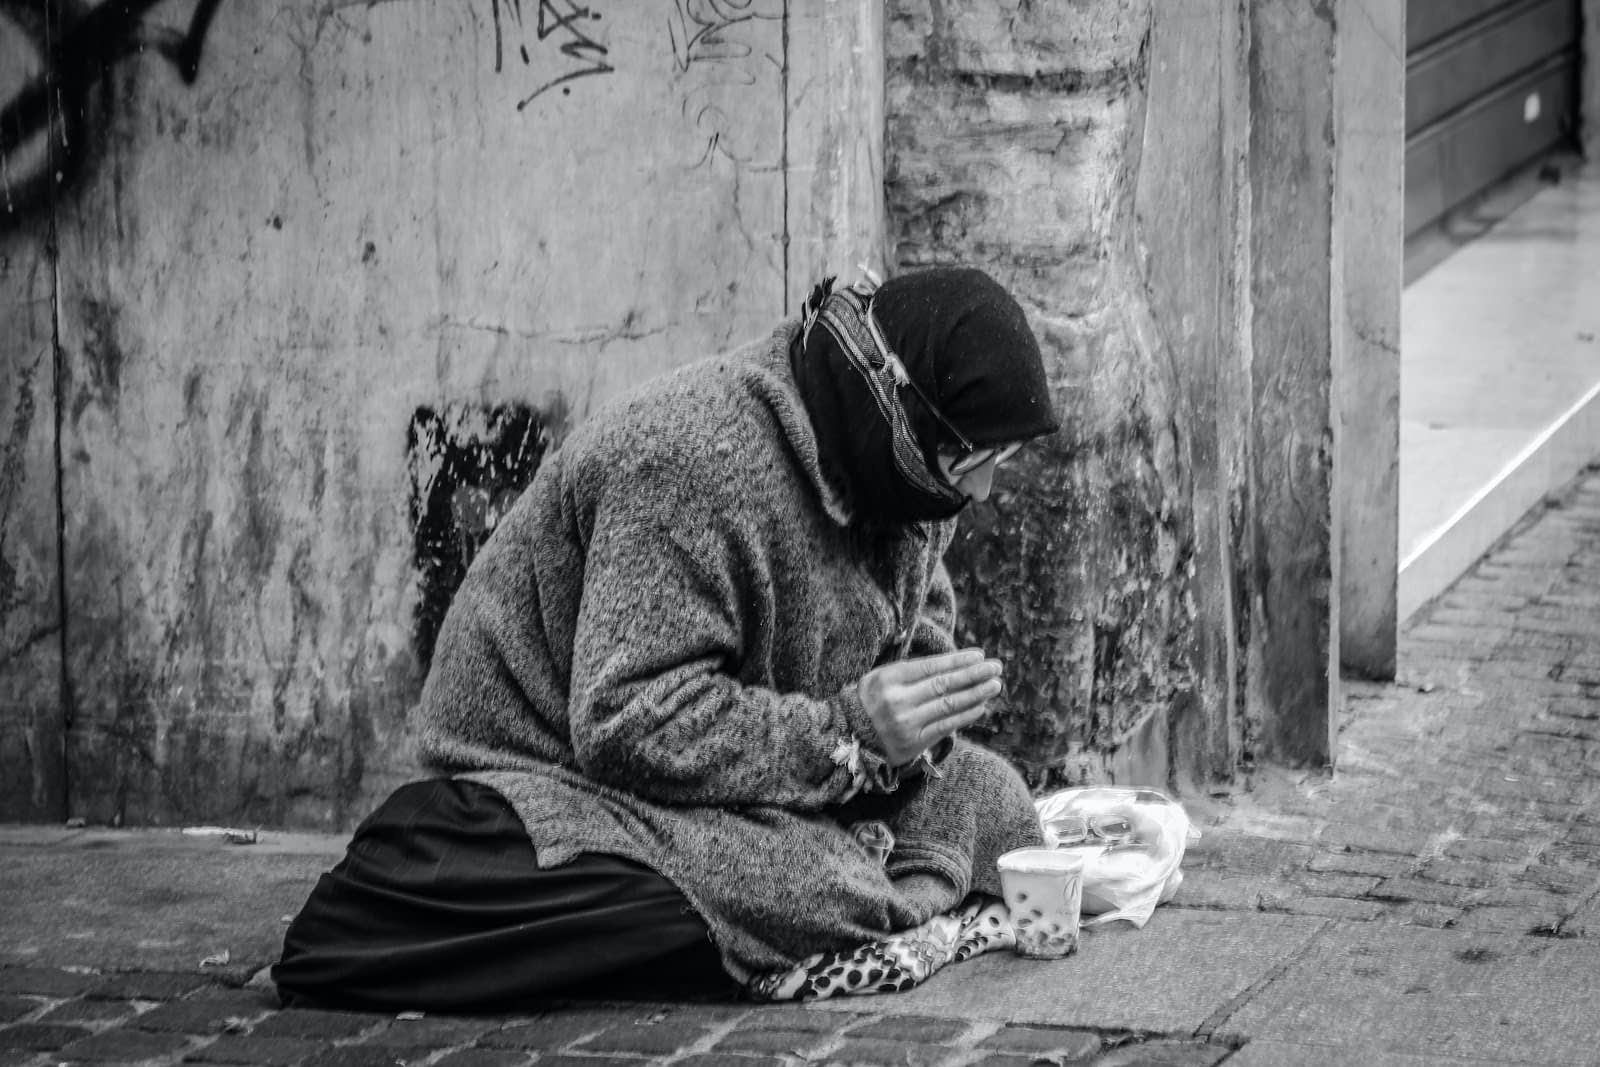 Ways to Help People Experiencing Homelessness for Free